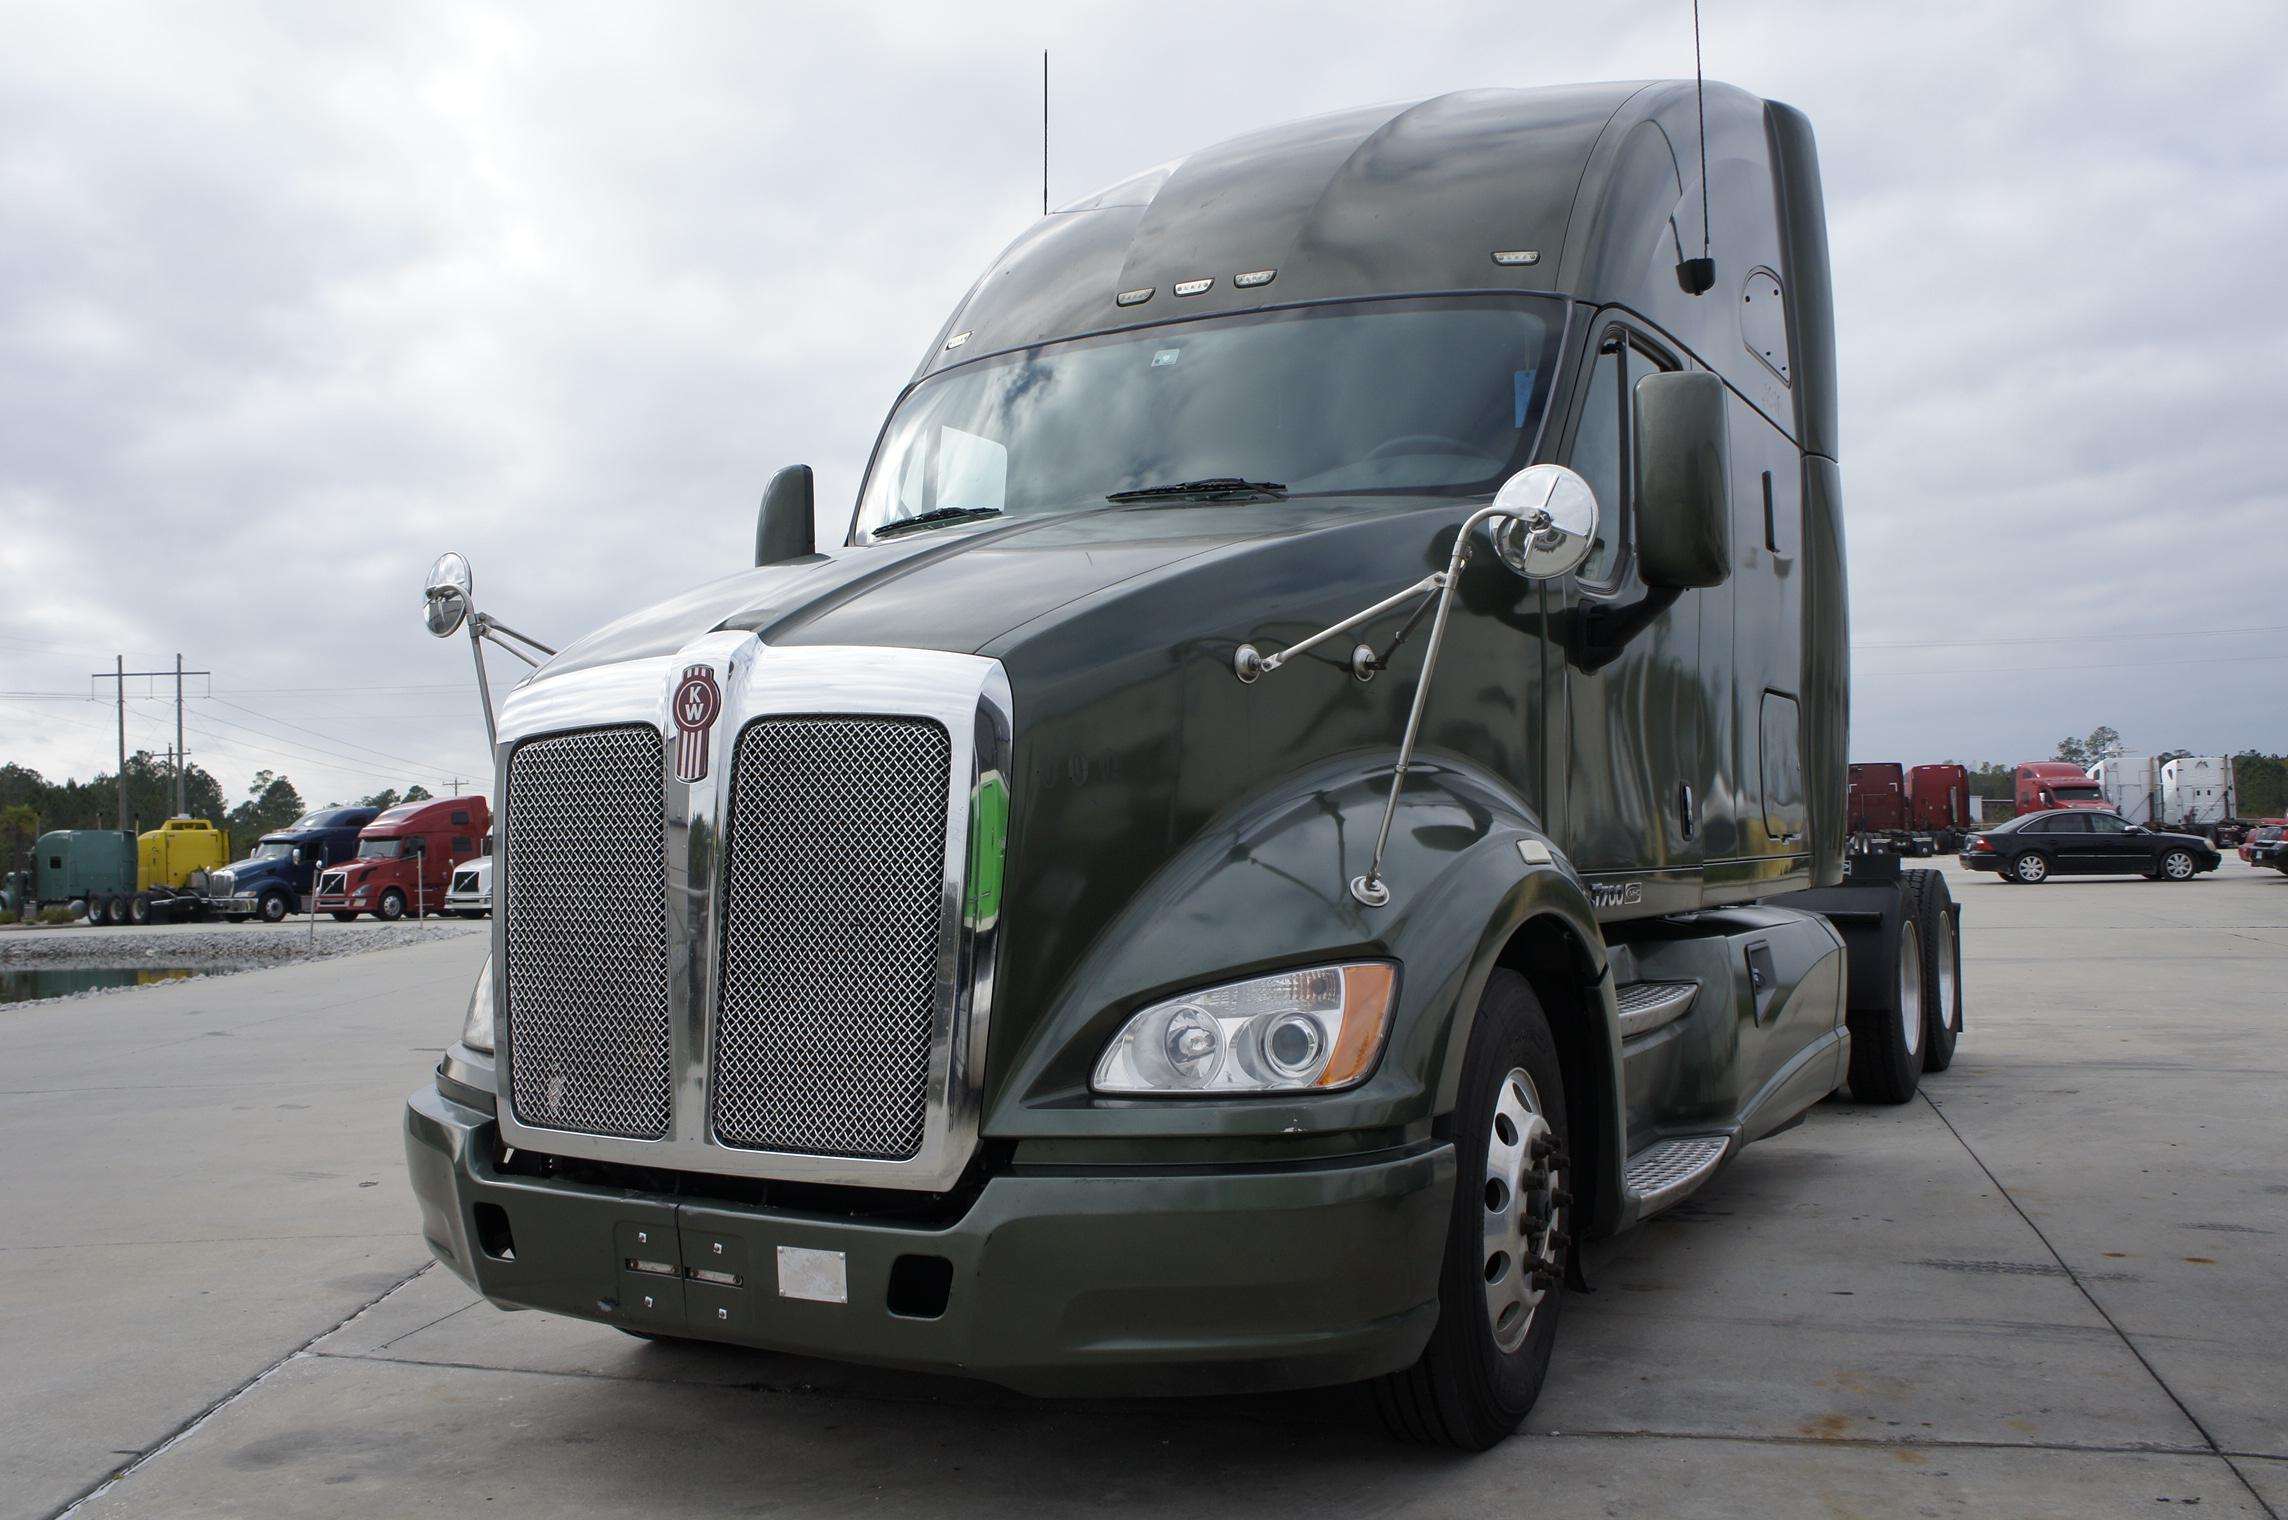 USED 2012 KENWORTH T700 SLEEPER TRUCK #44960